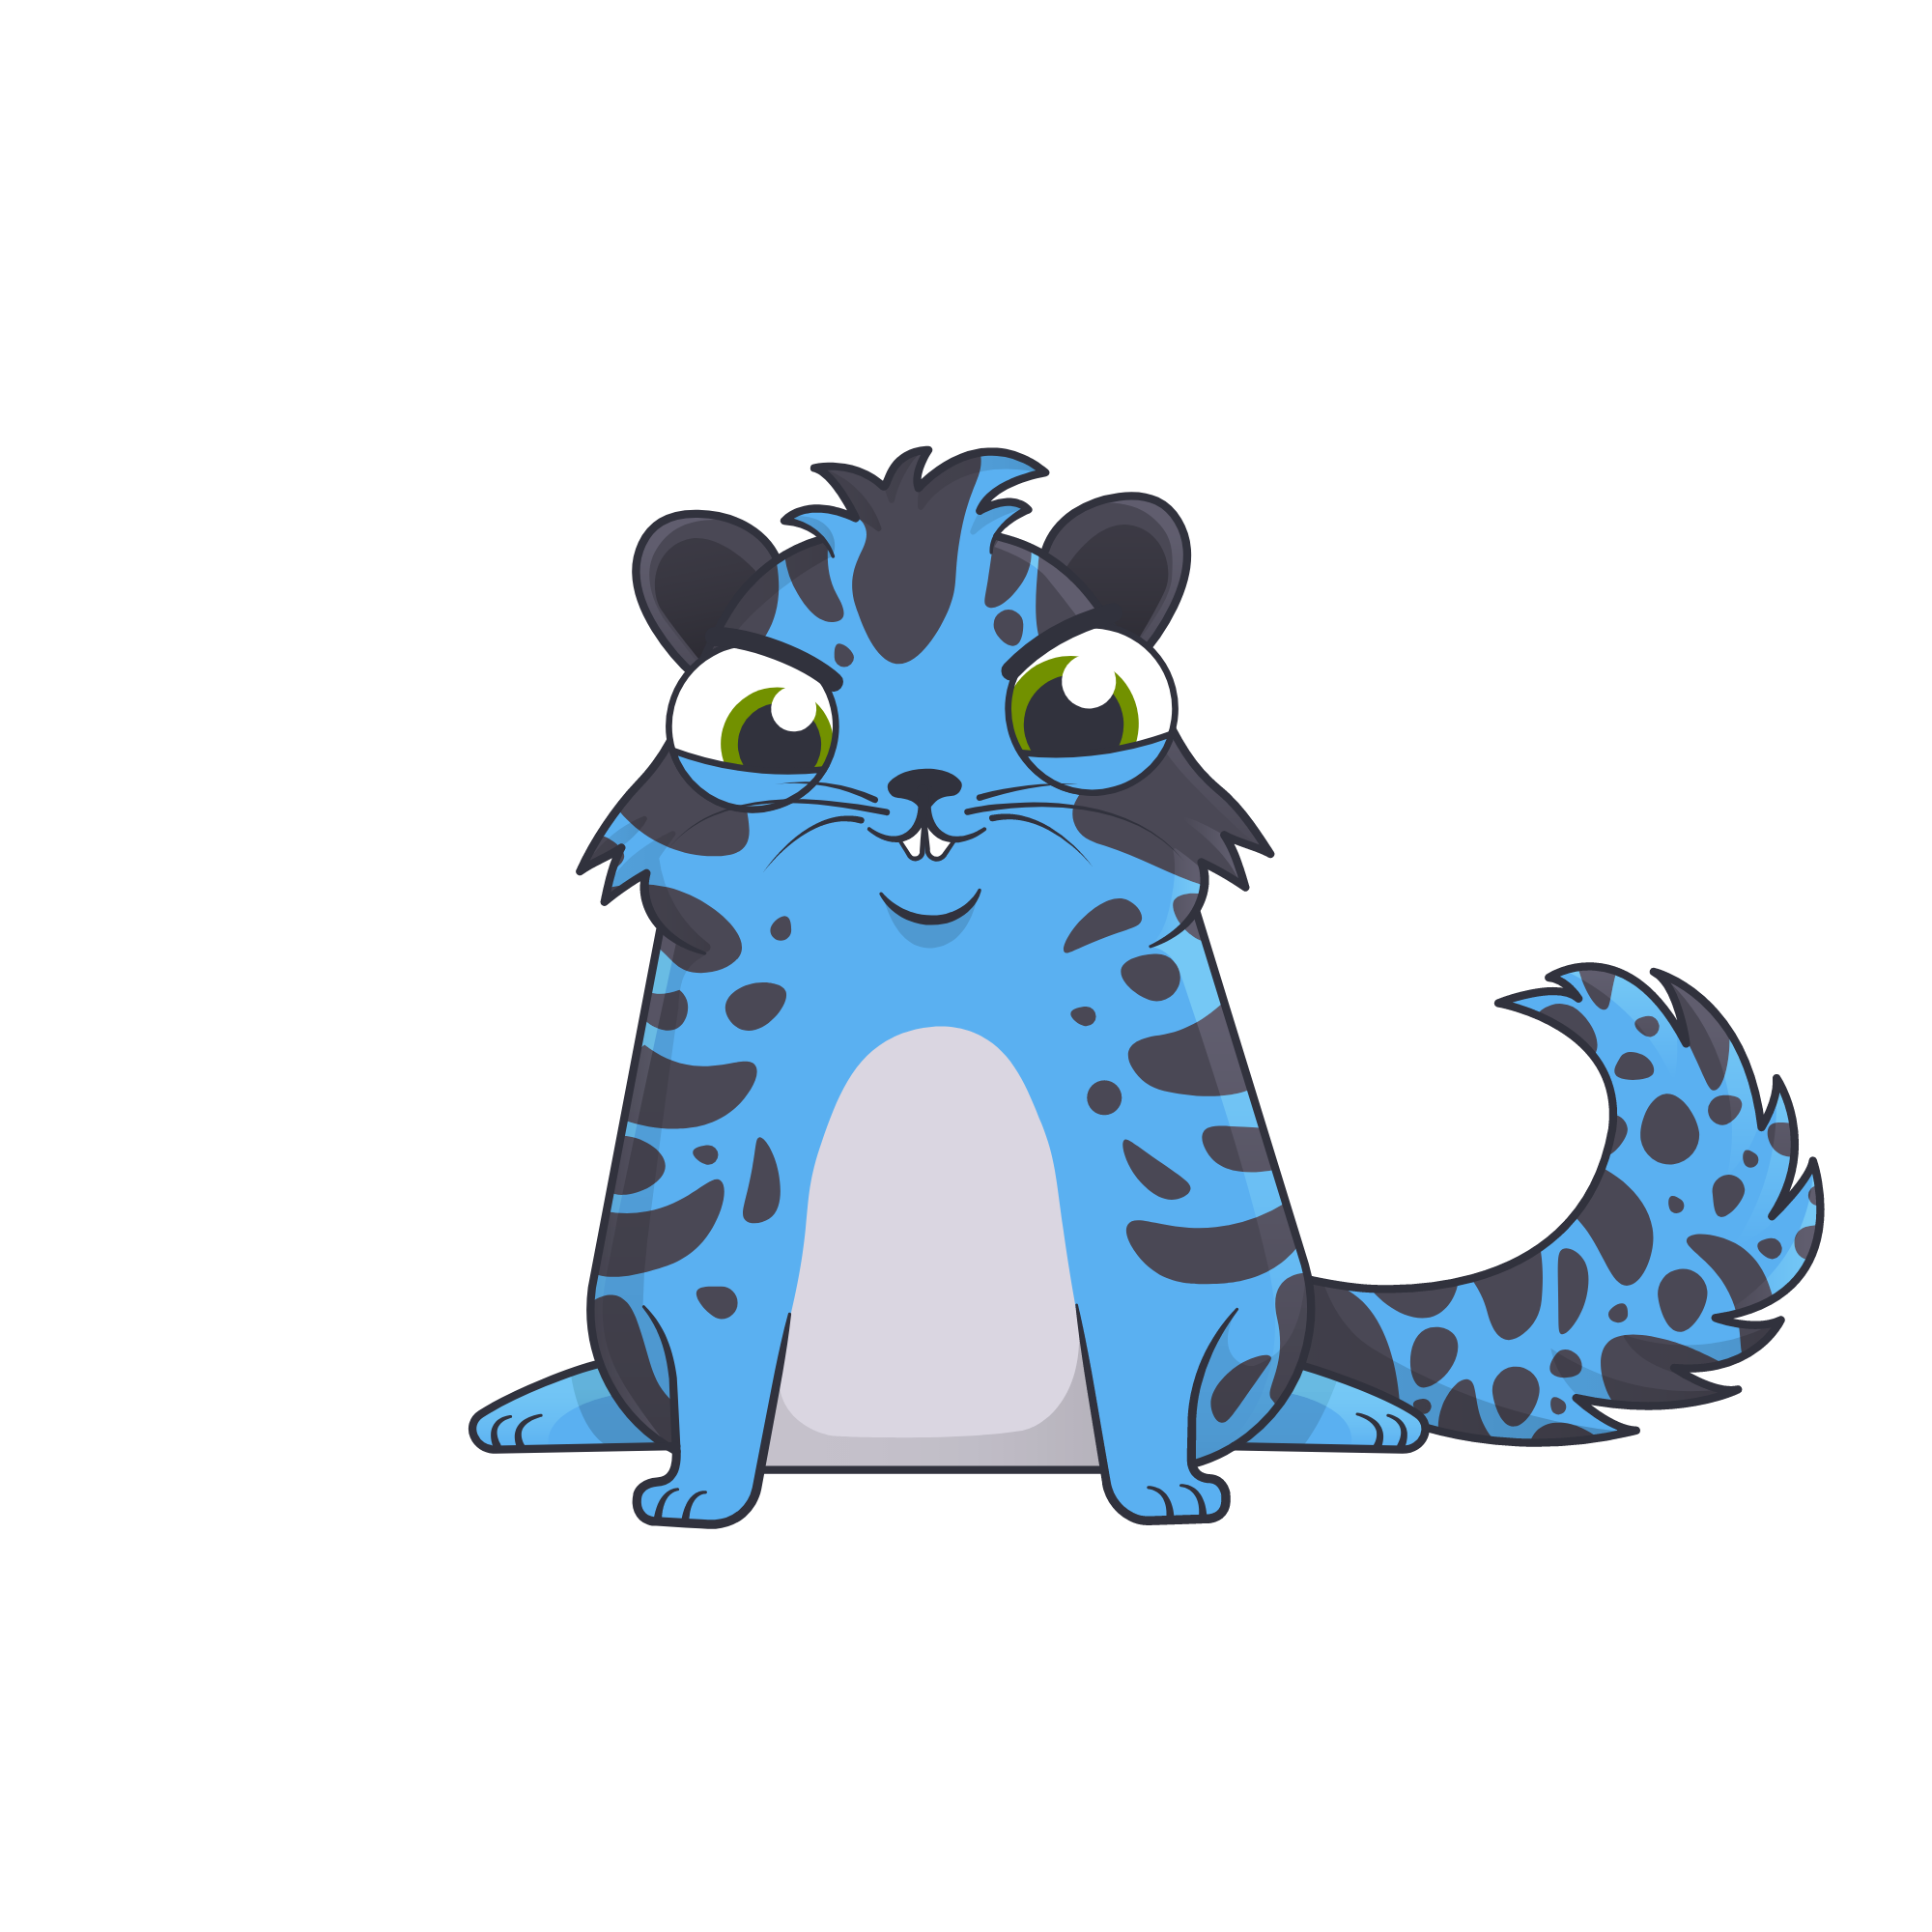 cryptokitty #922411